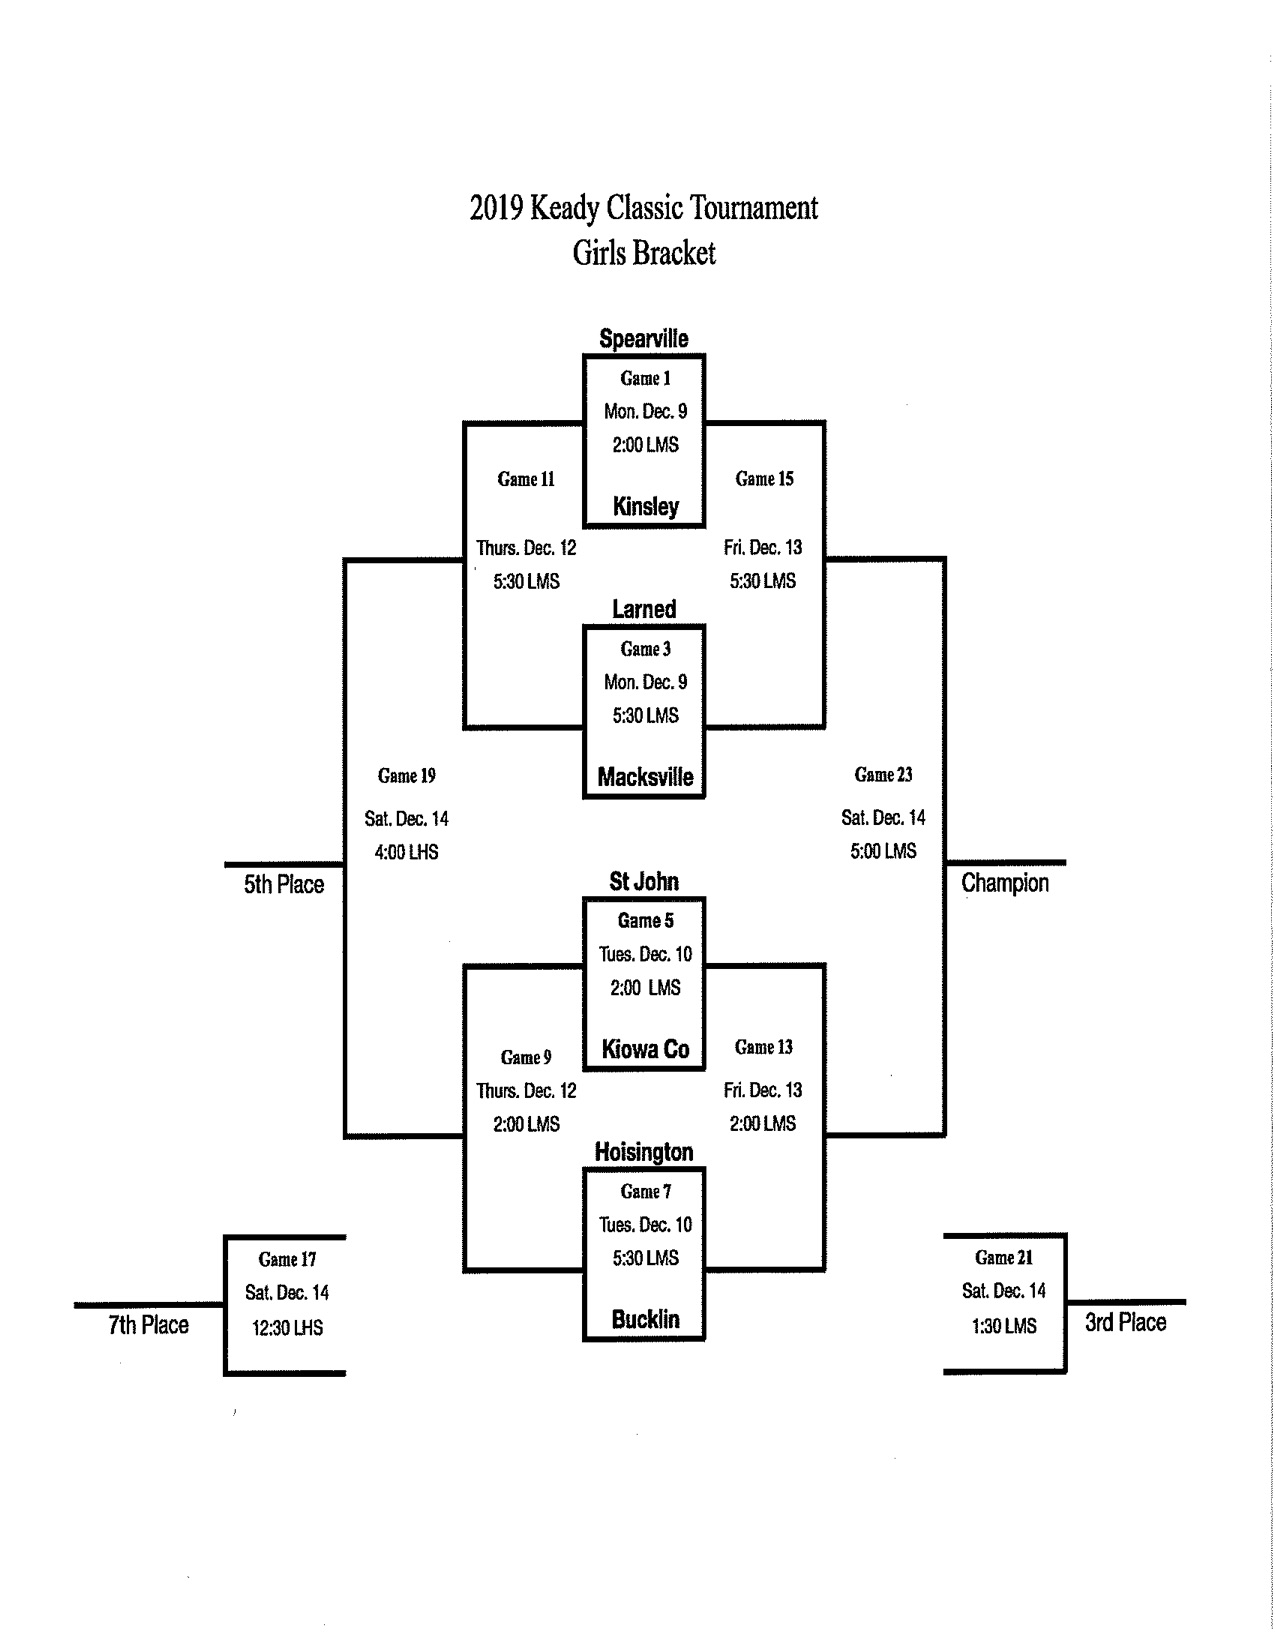 2019 Keady Classic Girls Tournament Bracket